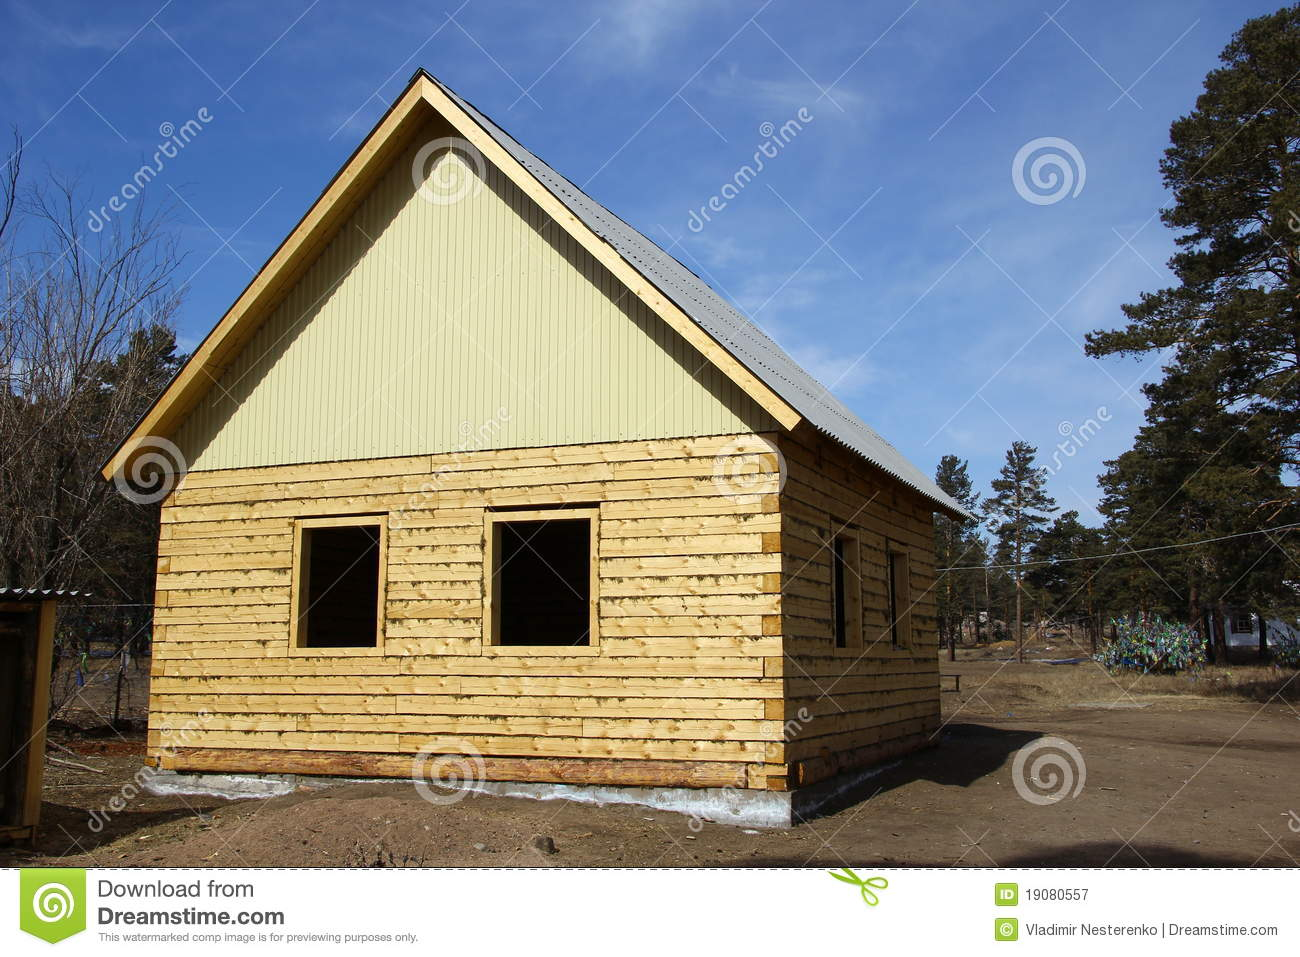 The new square log house stock image image of suburb for Square log home